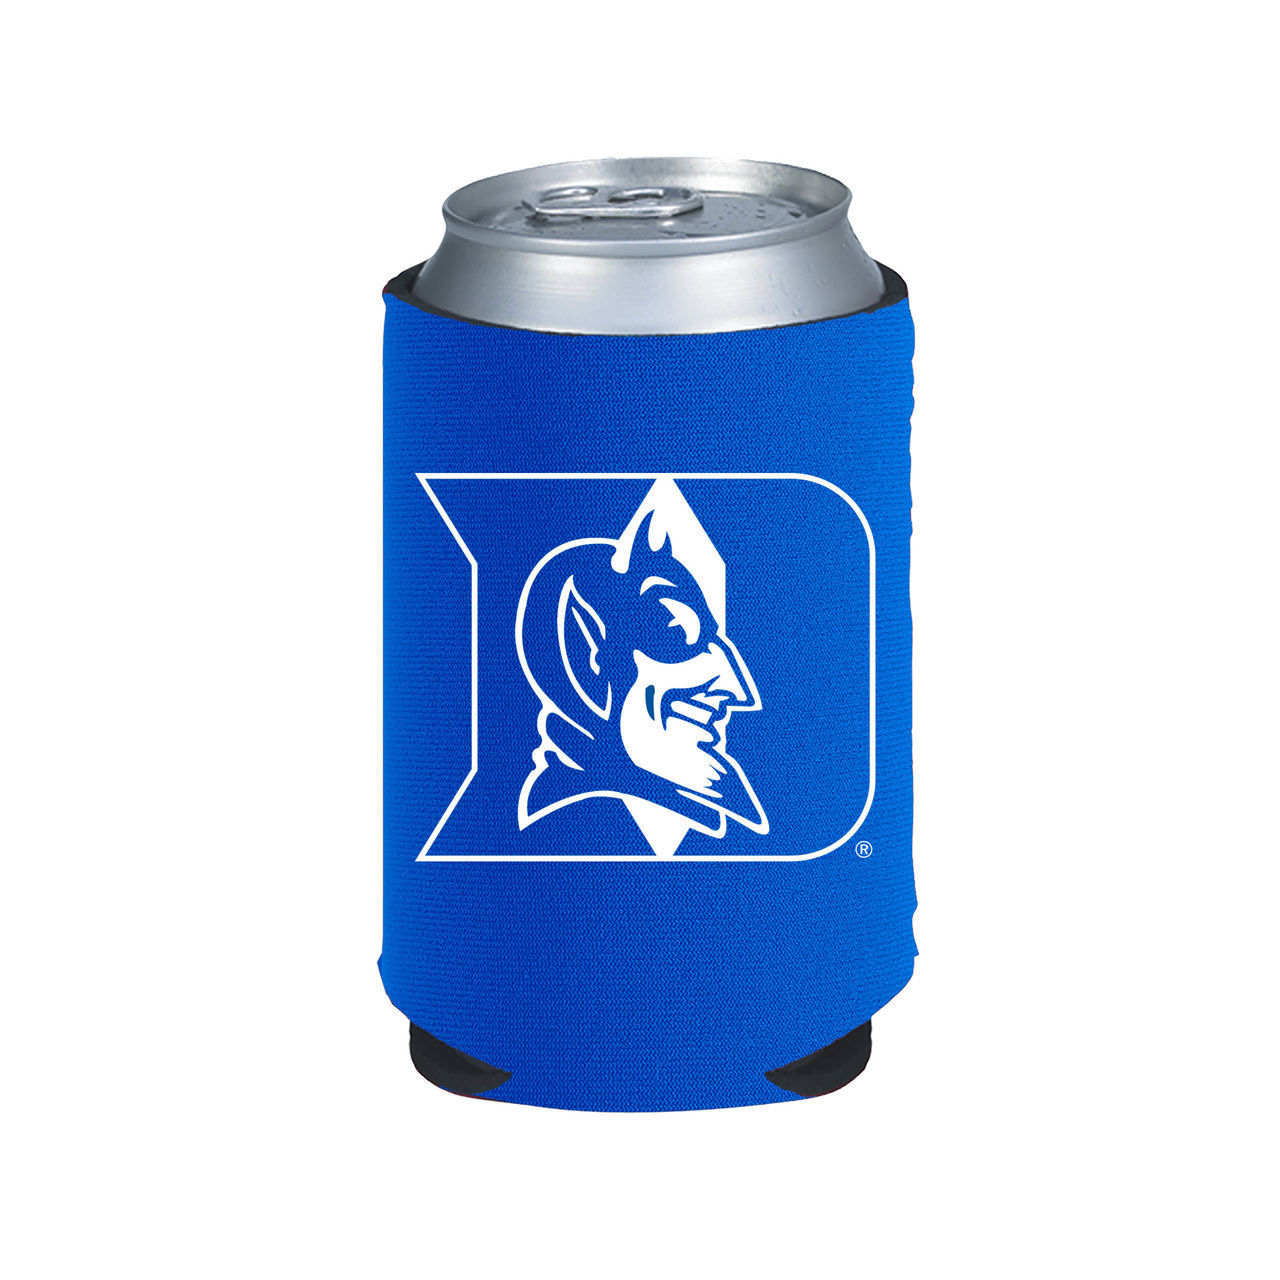 DUKE BLUE DEVILS BEER SODA WATER CAN BOTTLE KOOZIE KADDY HOLDER NCAA